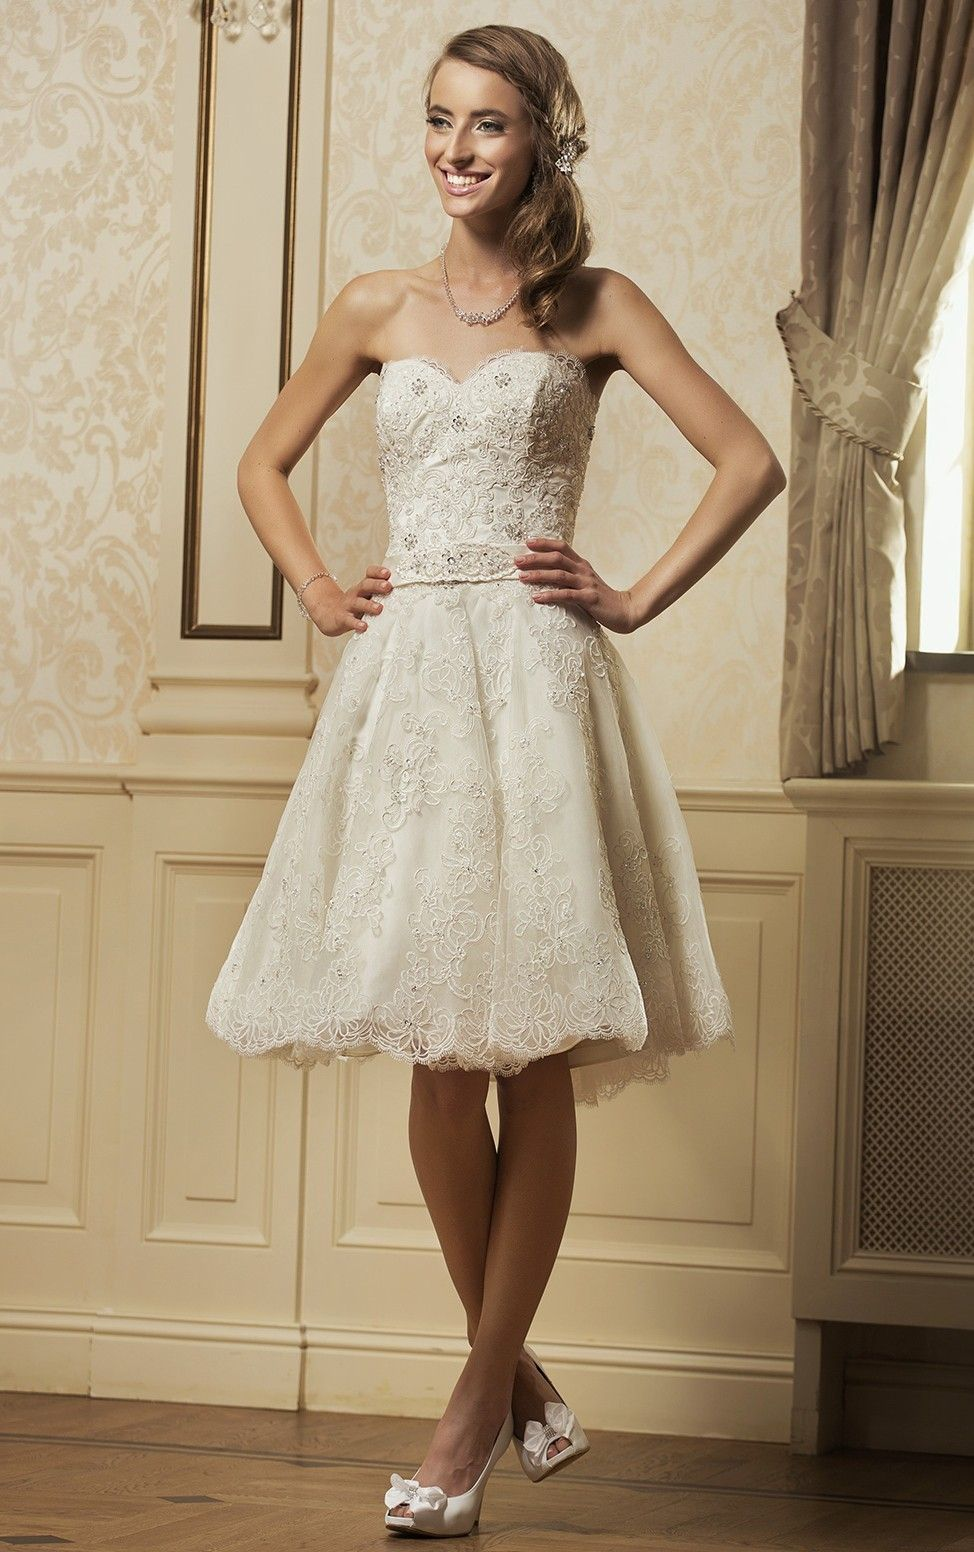 Courthouse wedding dress plus size  Natural Waist Aline Laceup Short Wedding Dresses  Lace Wedding